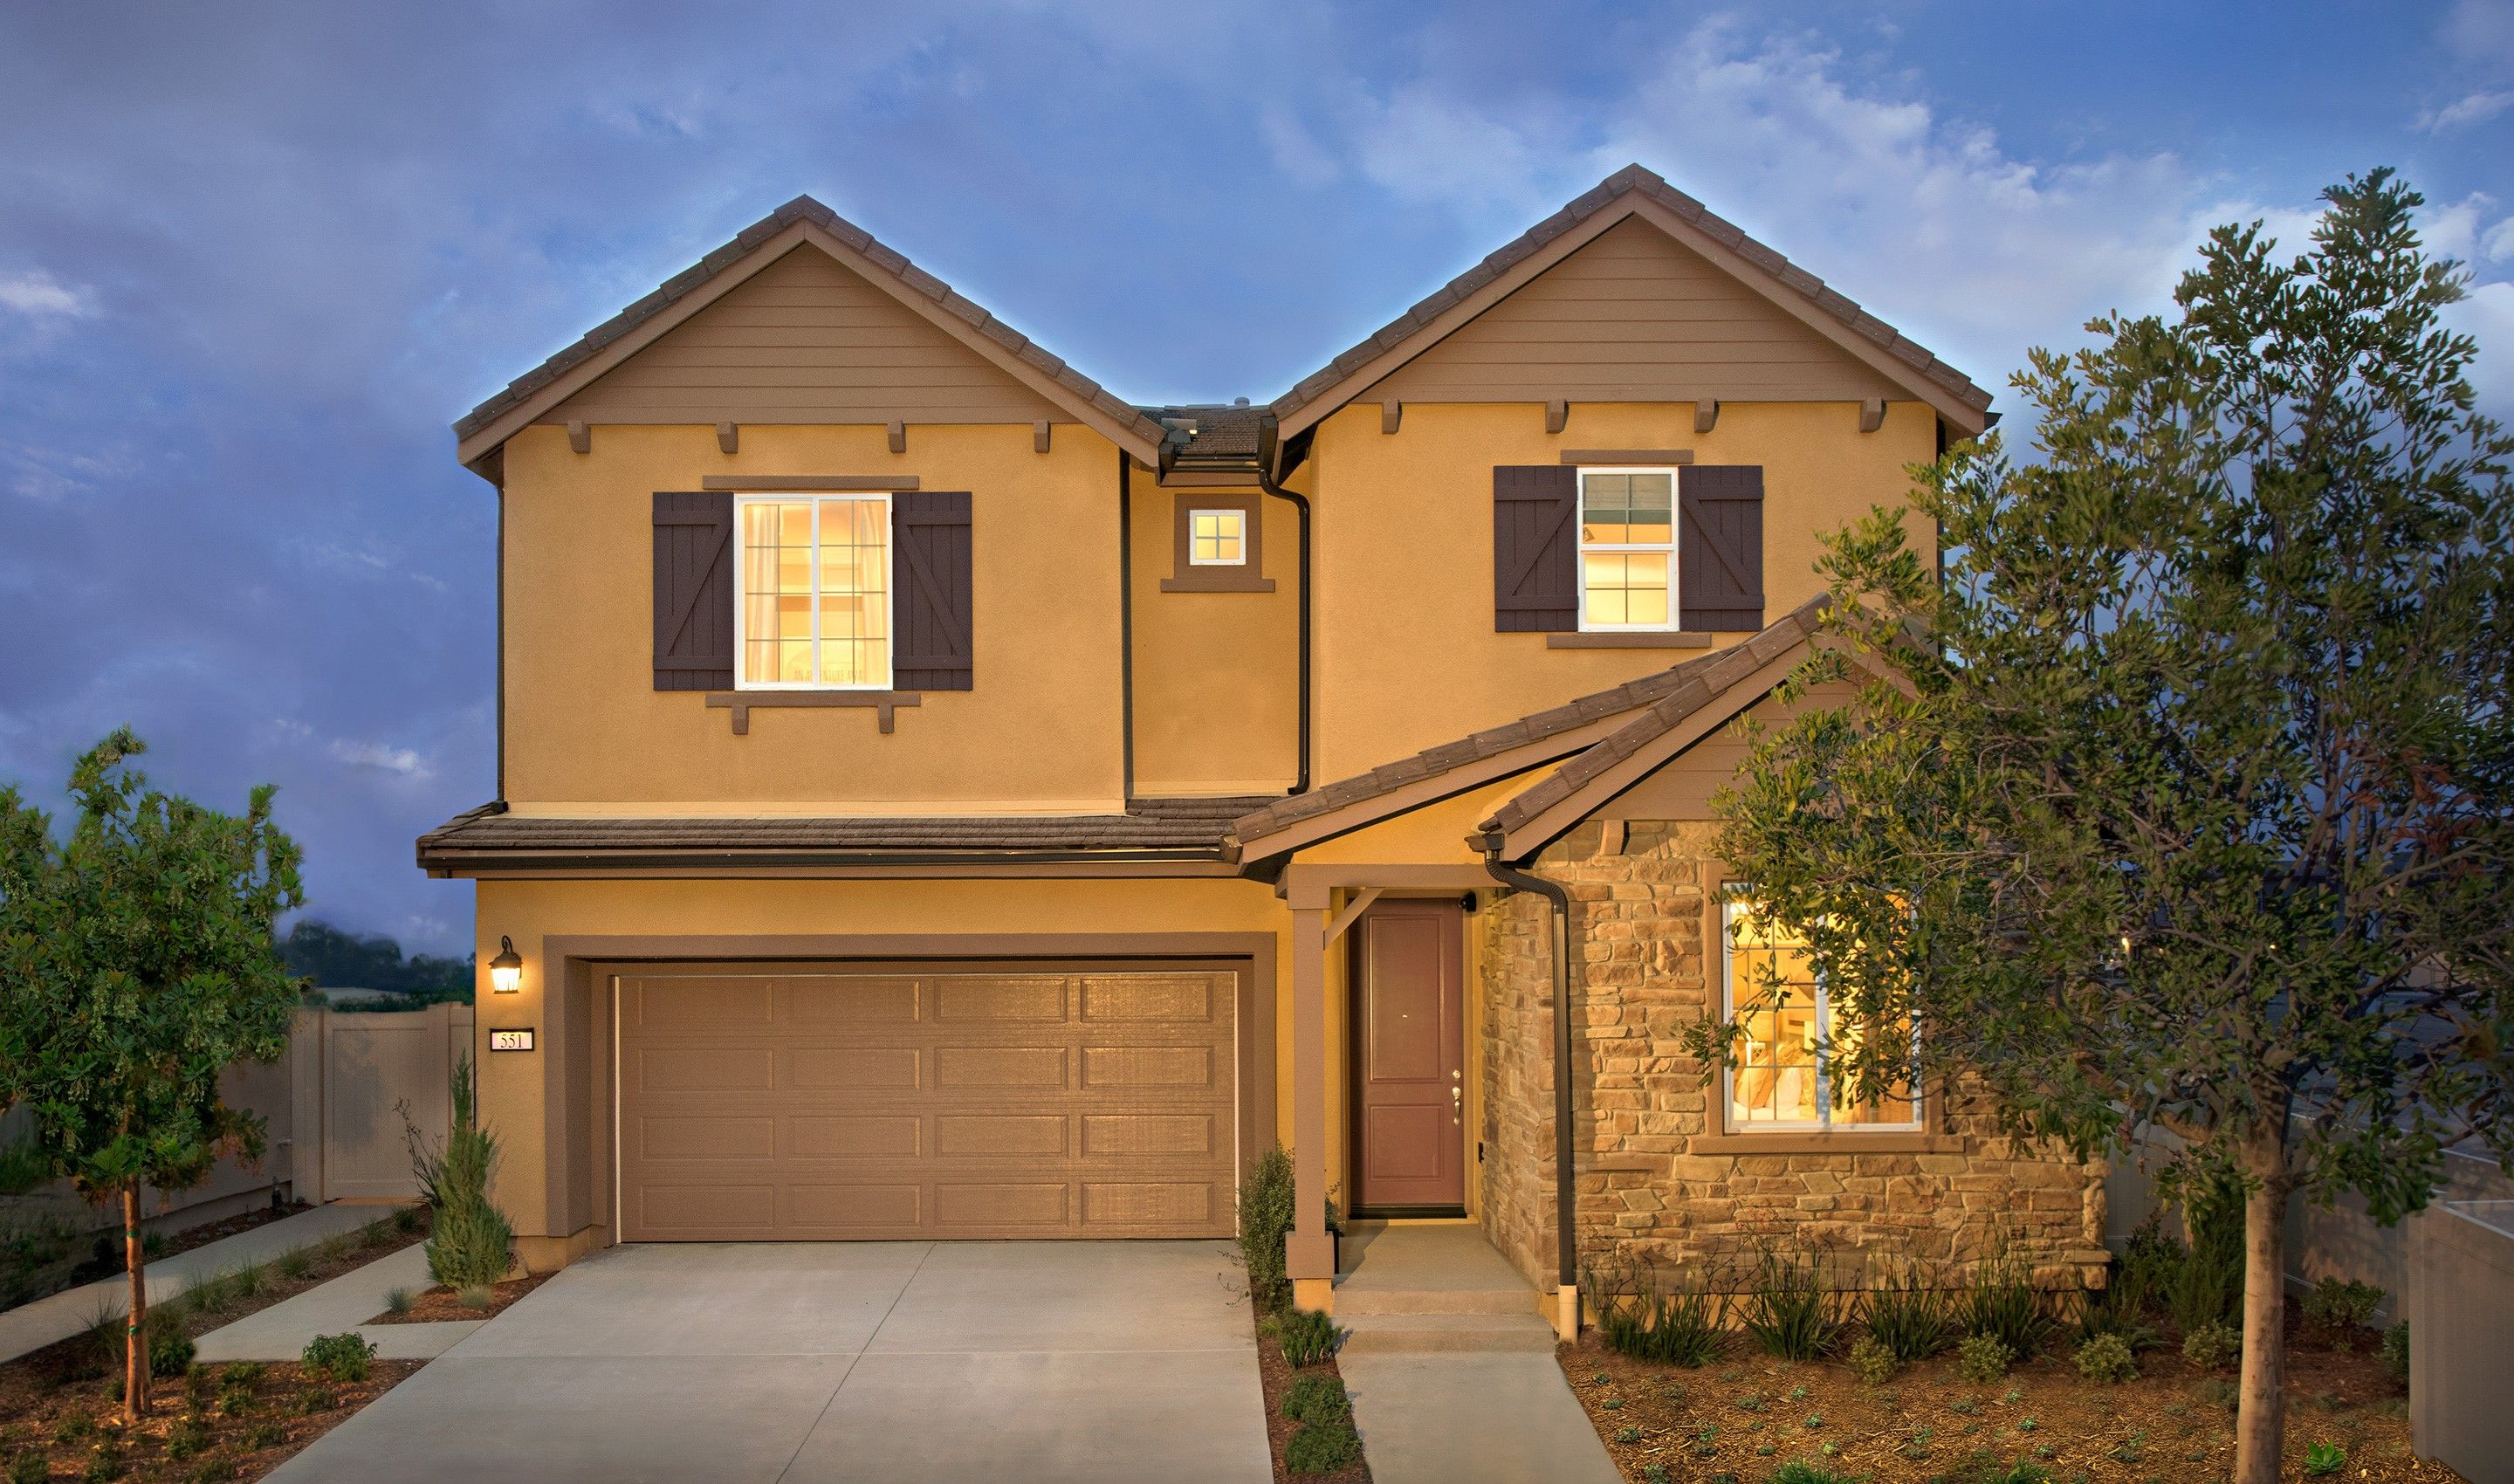 Single Family for Sale at Reef 551 Owens River Drive, Homesite 442 Oxnard, California 93036 United States